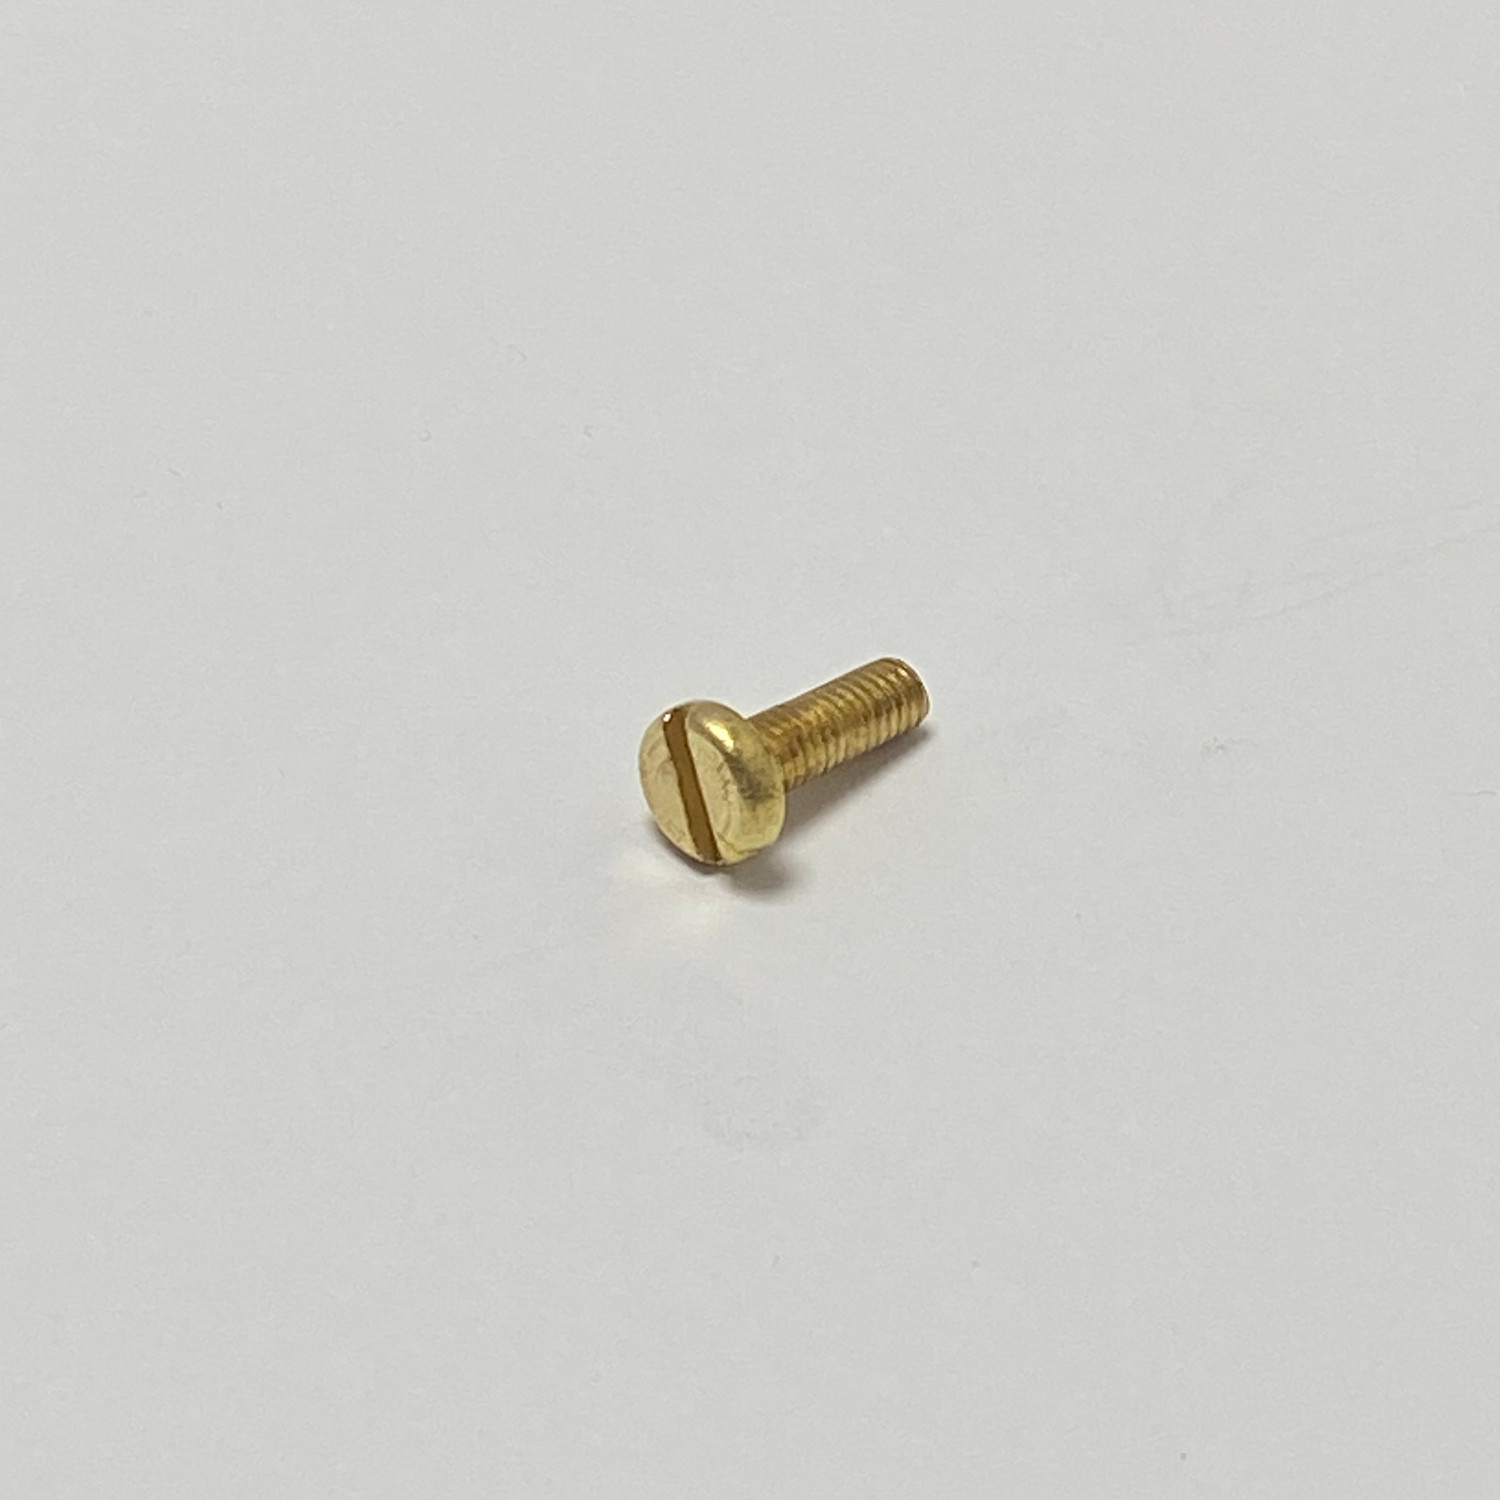 M5 X 12 BRASS SLOTTED CHEESE SCREWS